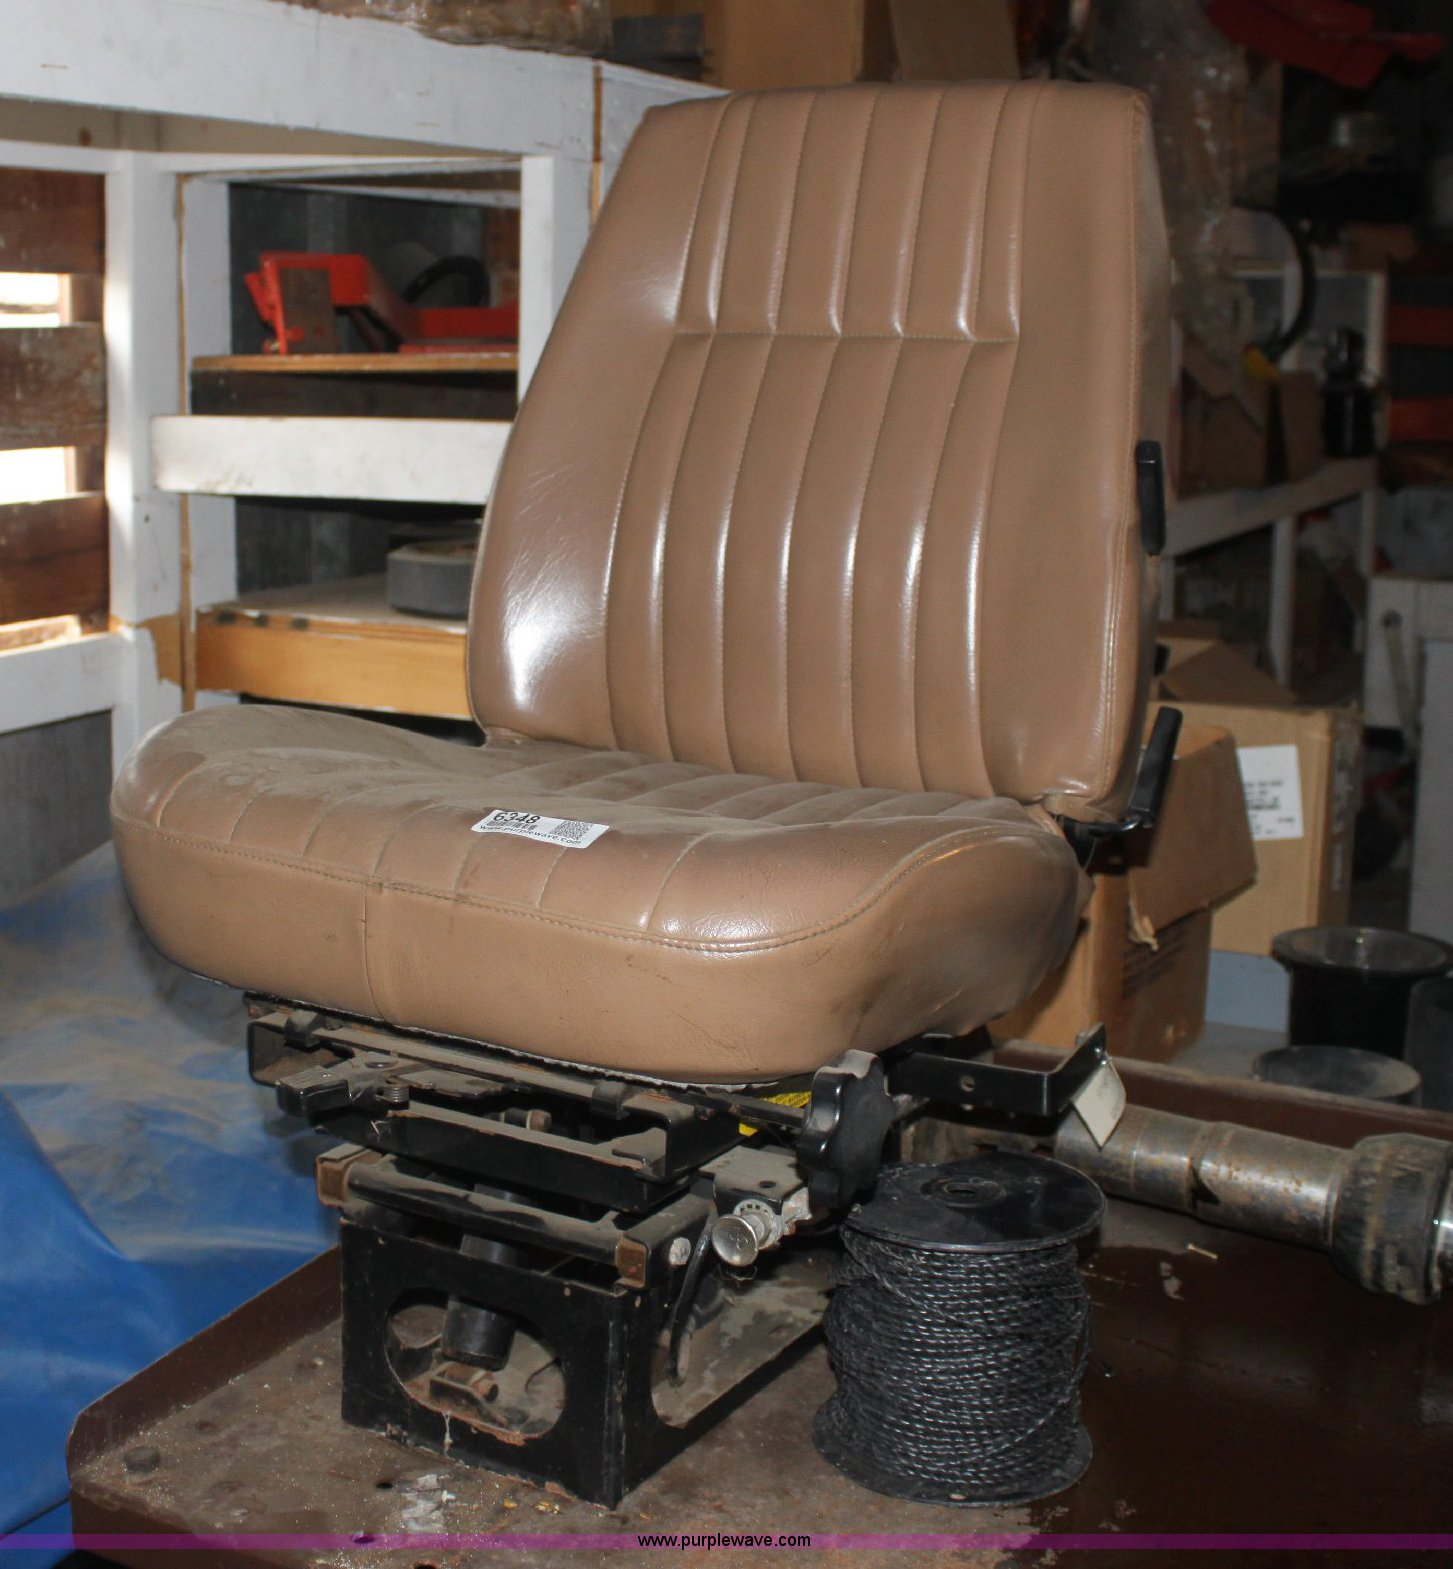 Bostrom 914 air ride seat | Item 6348 | SOLD! May 10 KDOT In